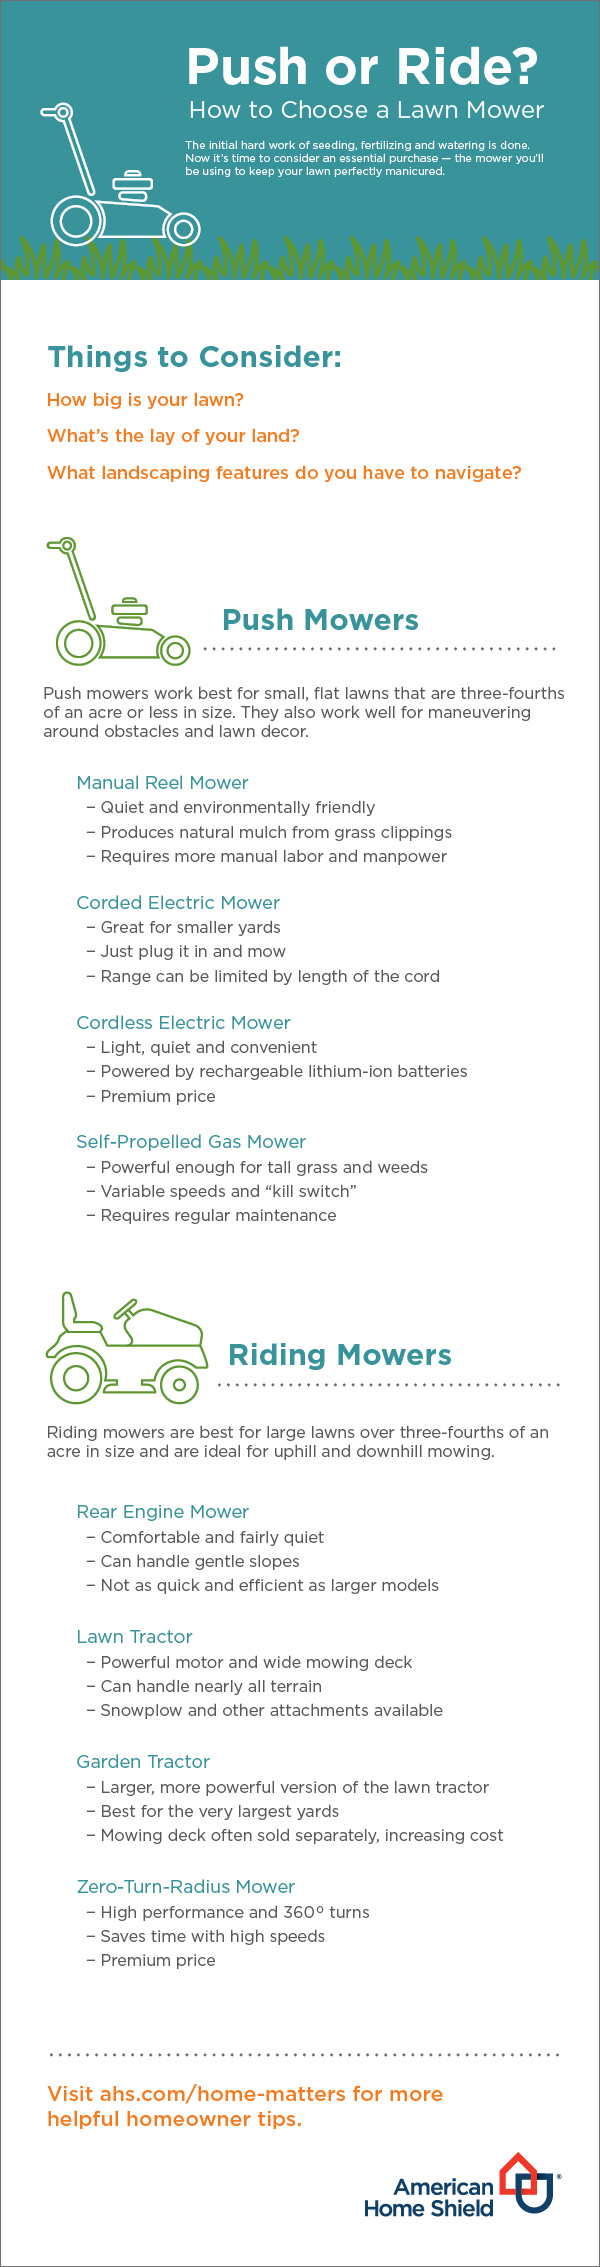 how to choose a lawn mower graphic